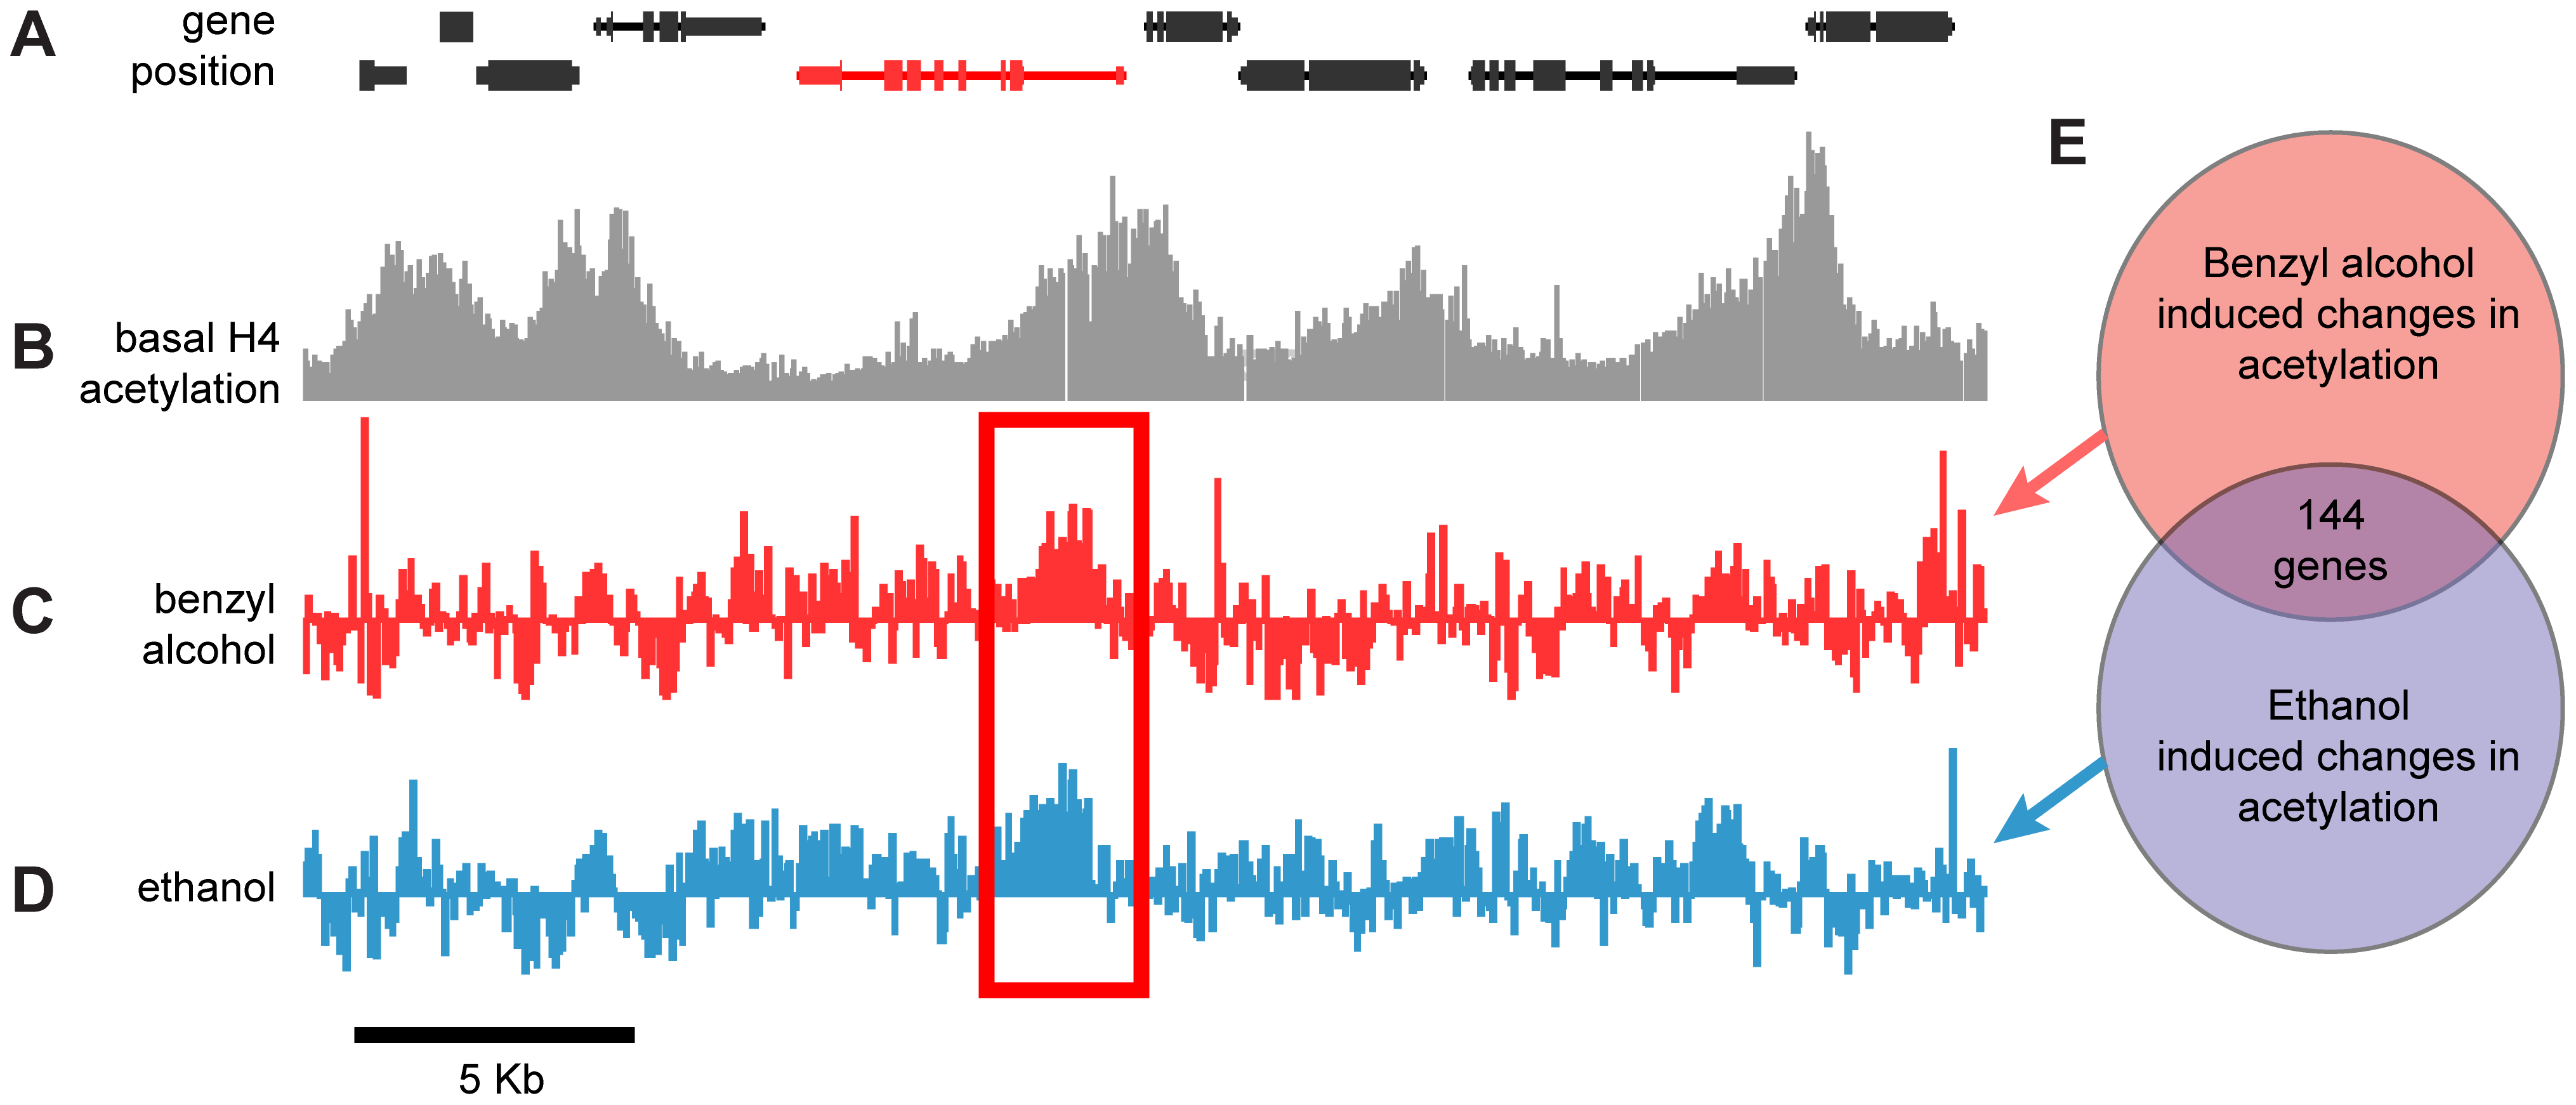 Genome-wide, drug-induced changes in H4 acetylation.